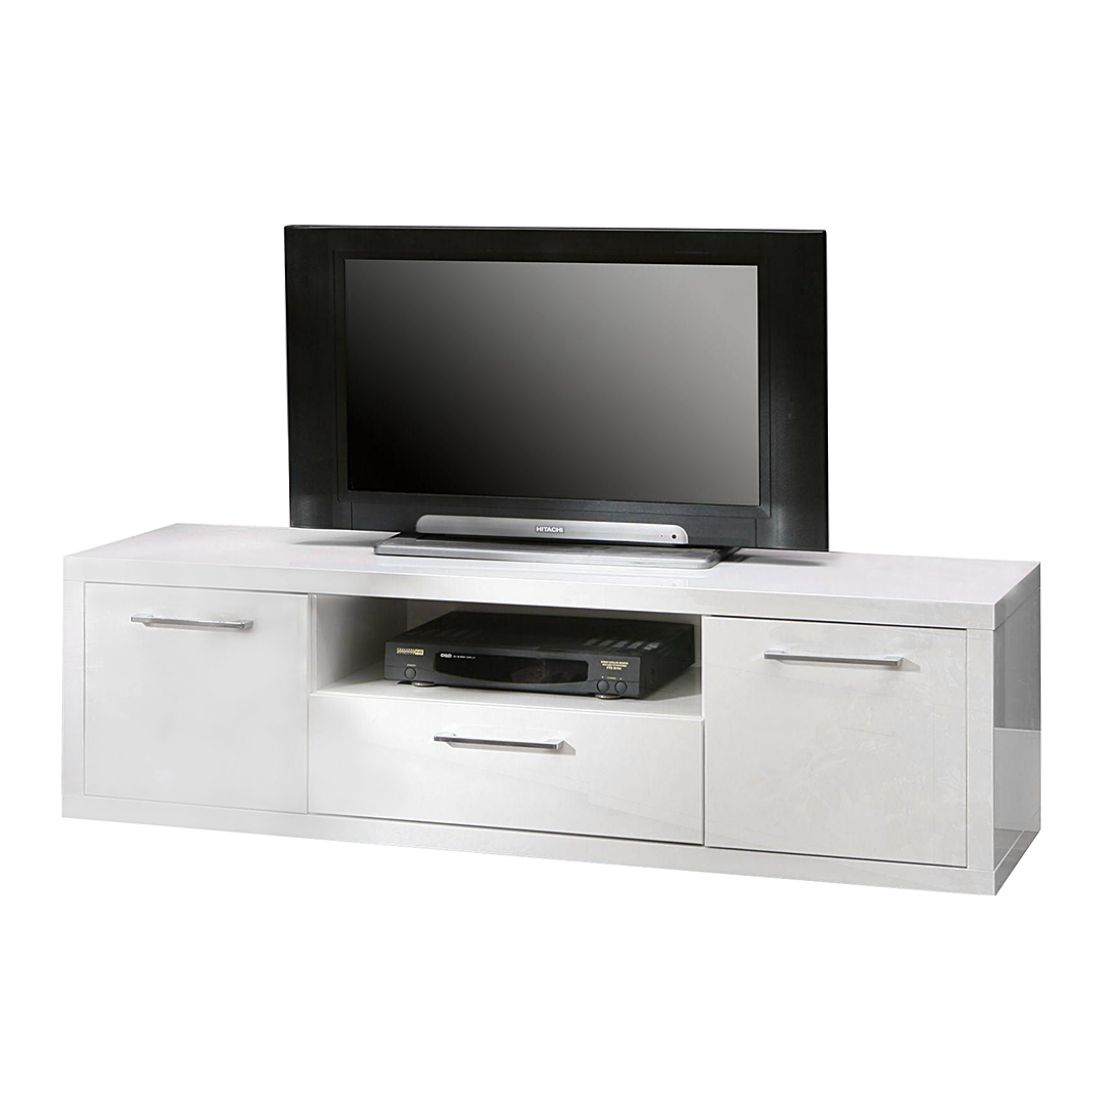 tv lowboard fresno ii hochglanz wei 152 5 cm mooved g nstig bestellen. Black Bedroom Furniture Sets. Home Design Ideas